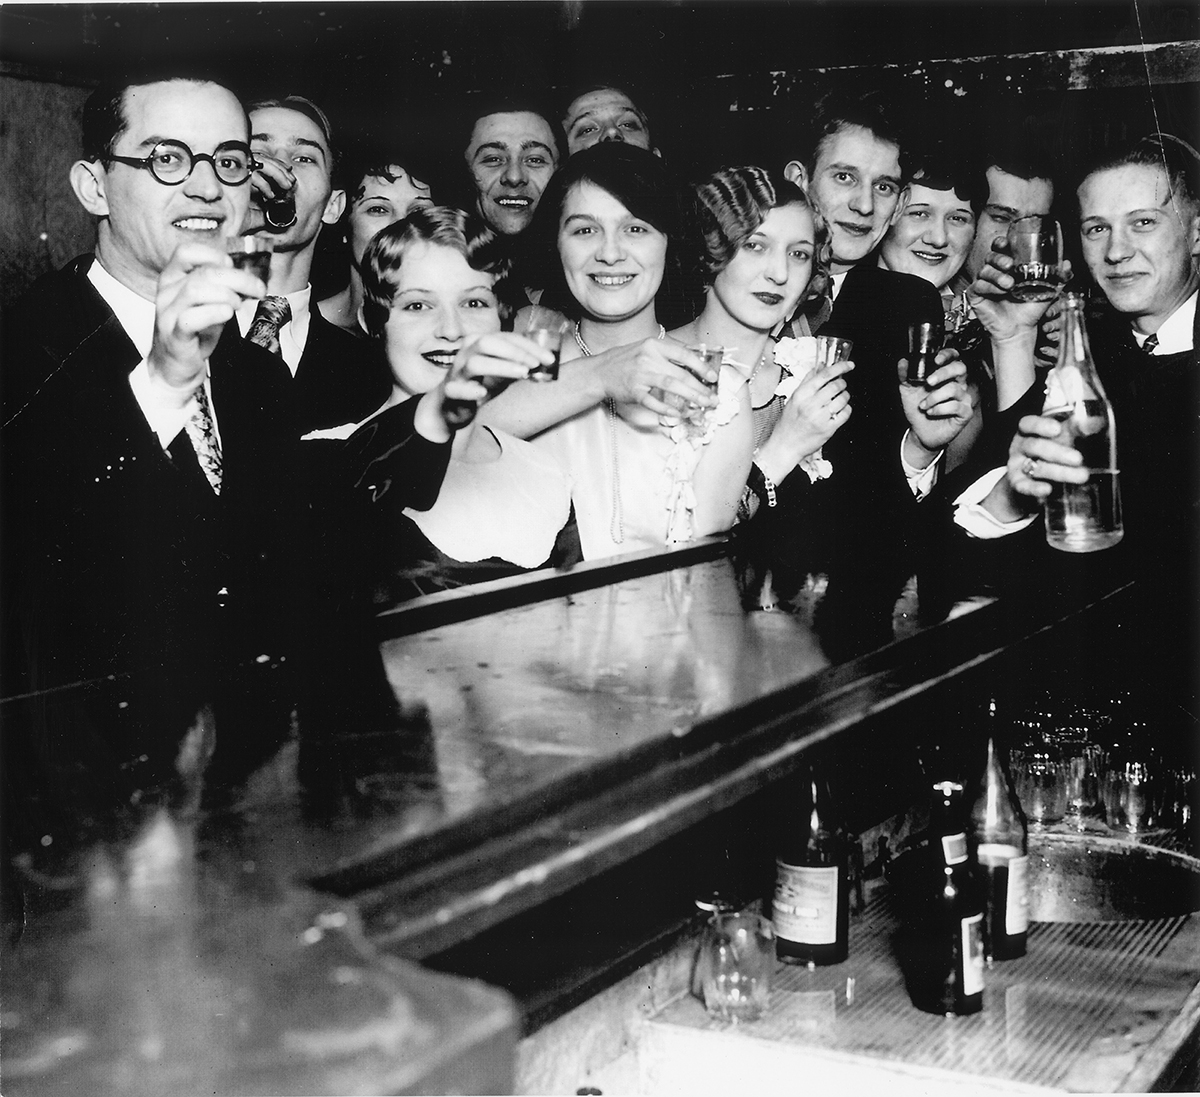 Speakeasy patrons toast the end of Prohibition in 1933.